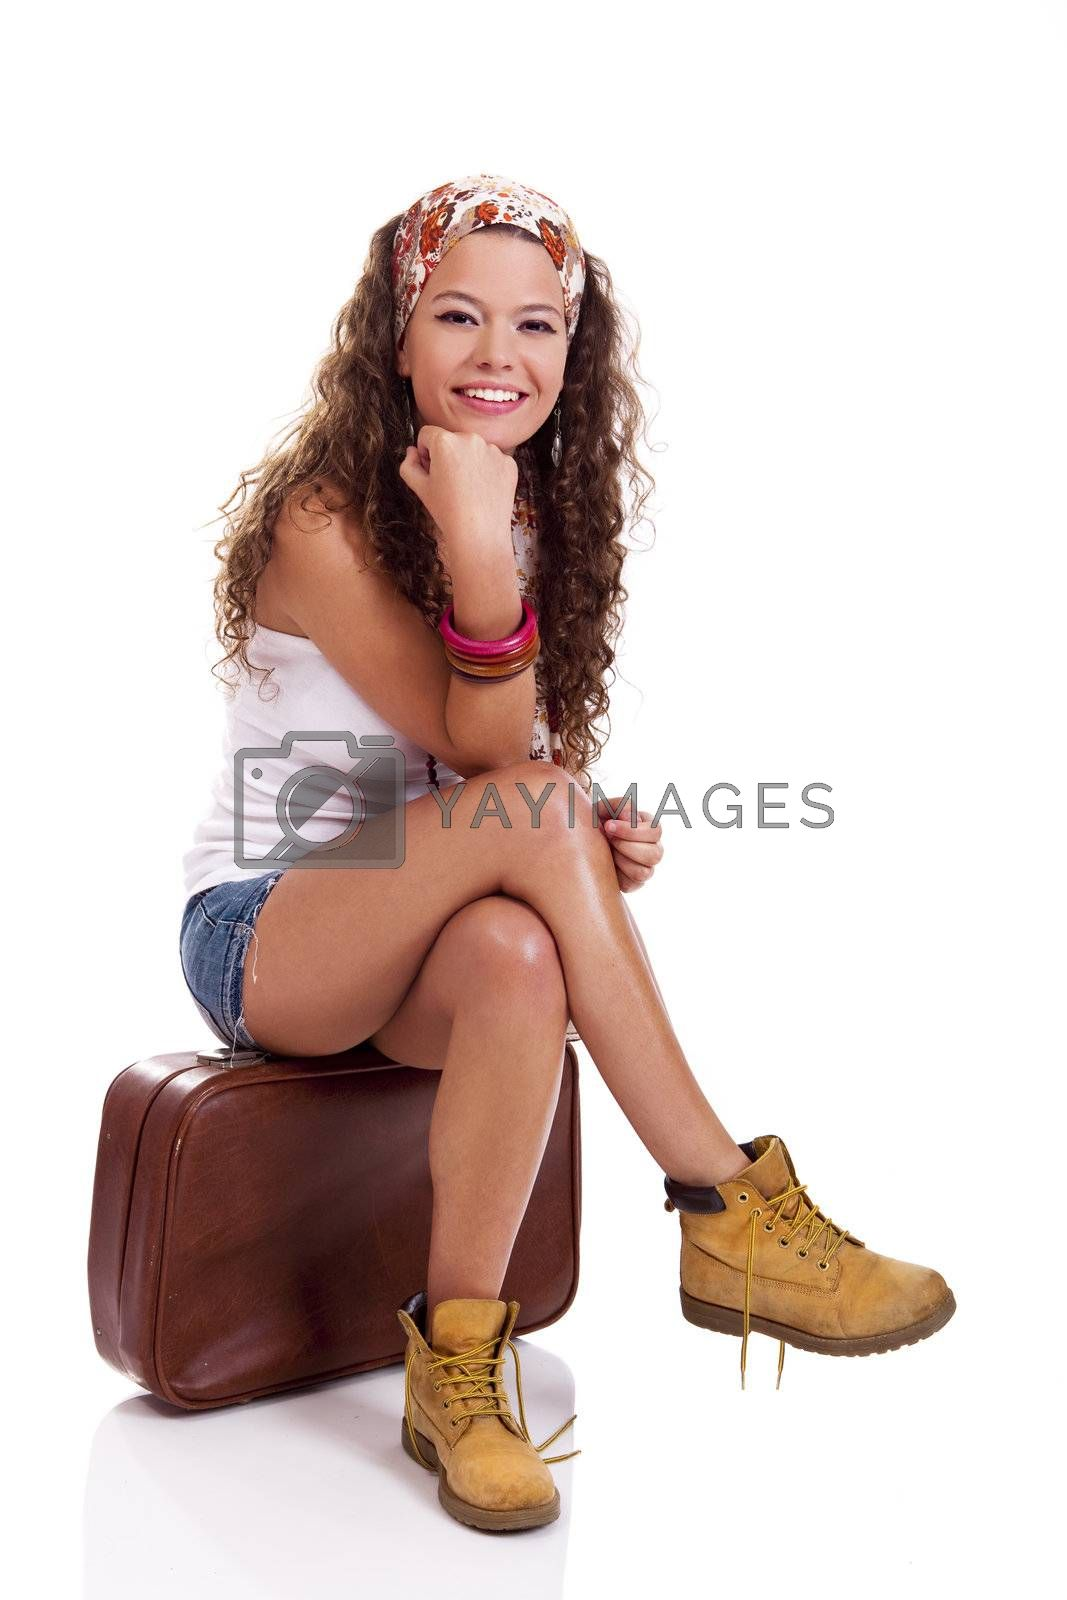 Royalty free image of Fashion woman by Iko